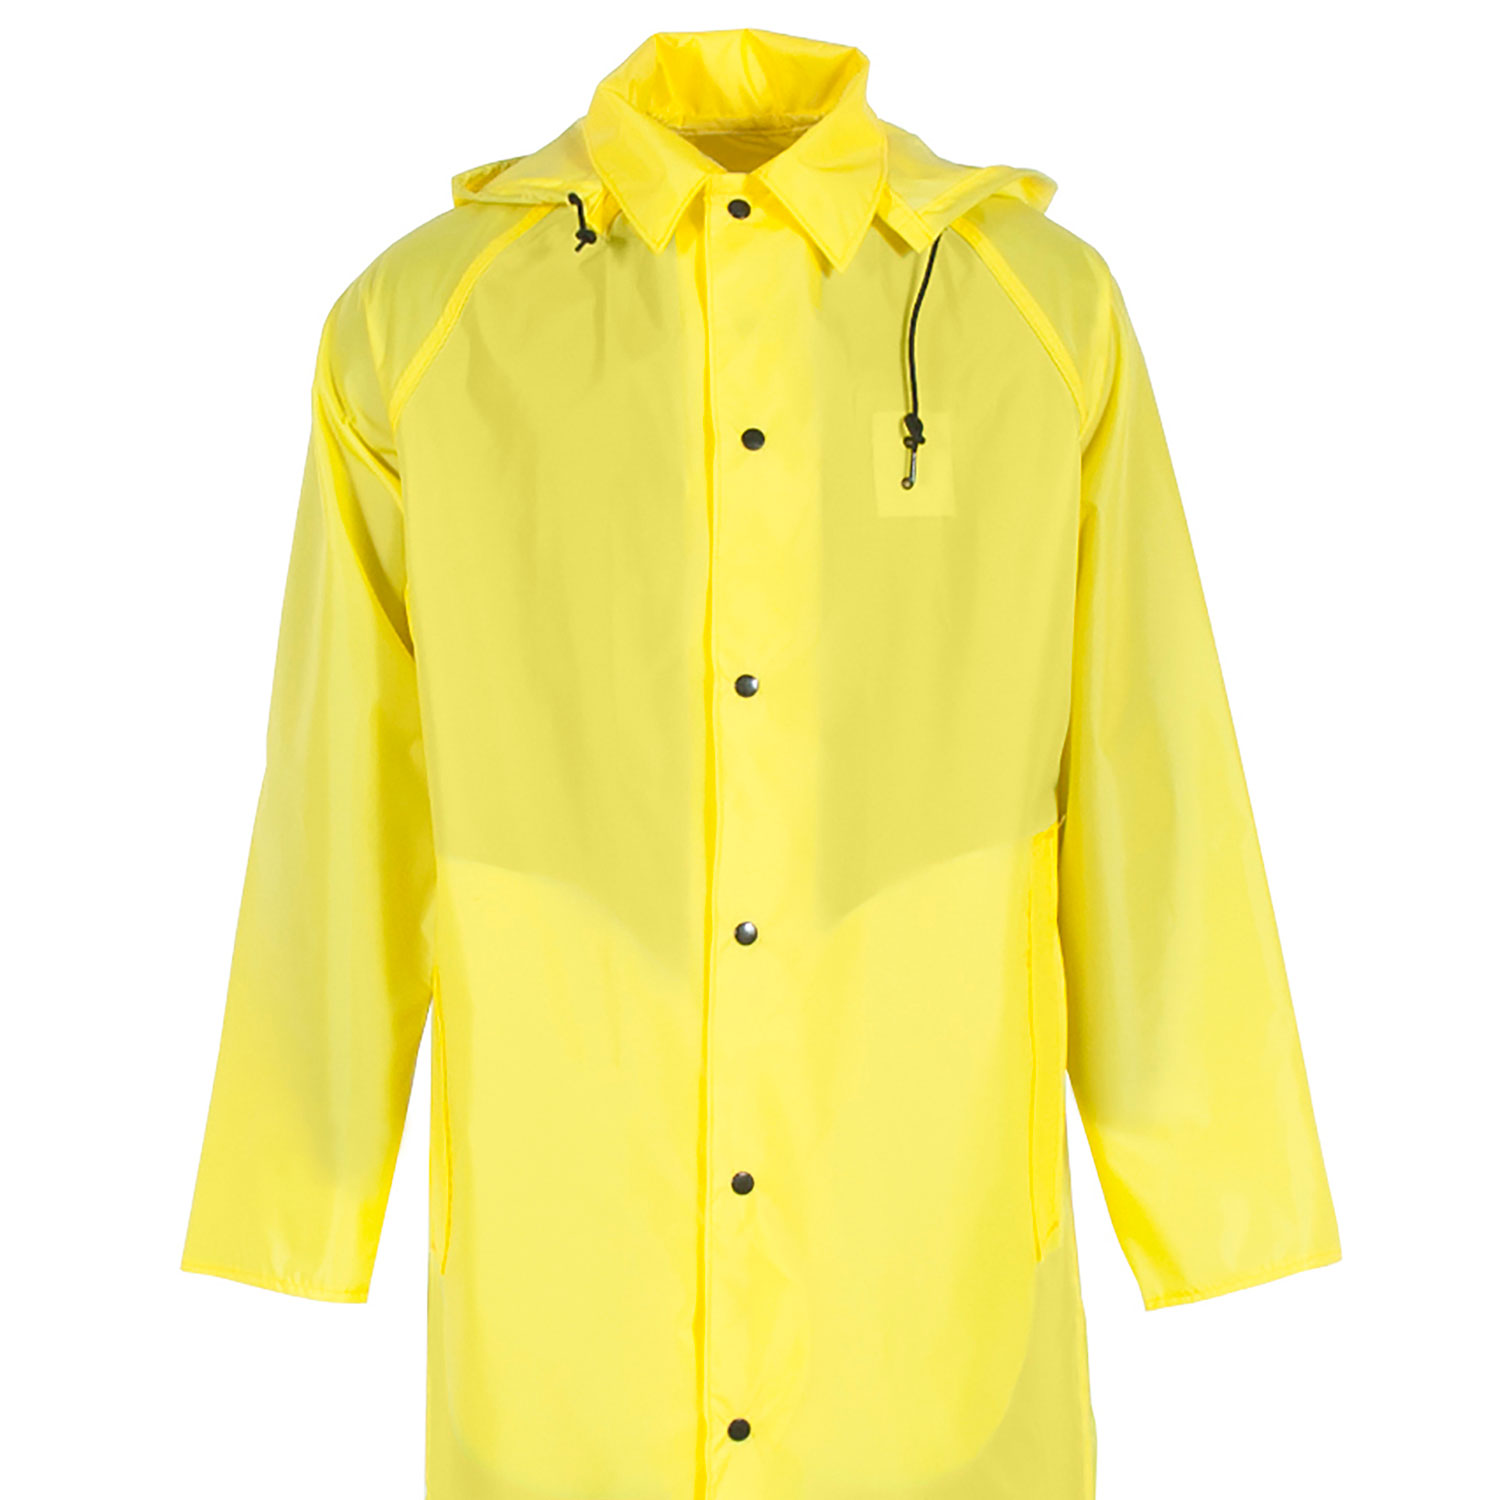 "Neese 48"" Polyurethane Nylon Raincoat"